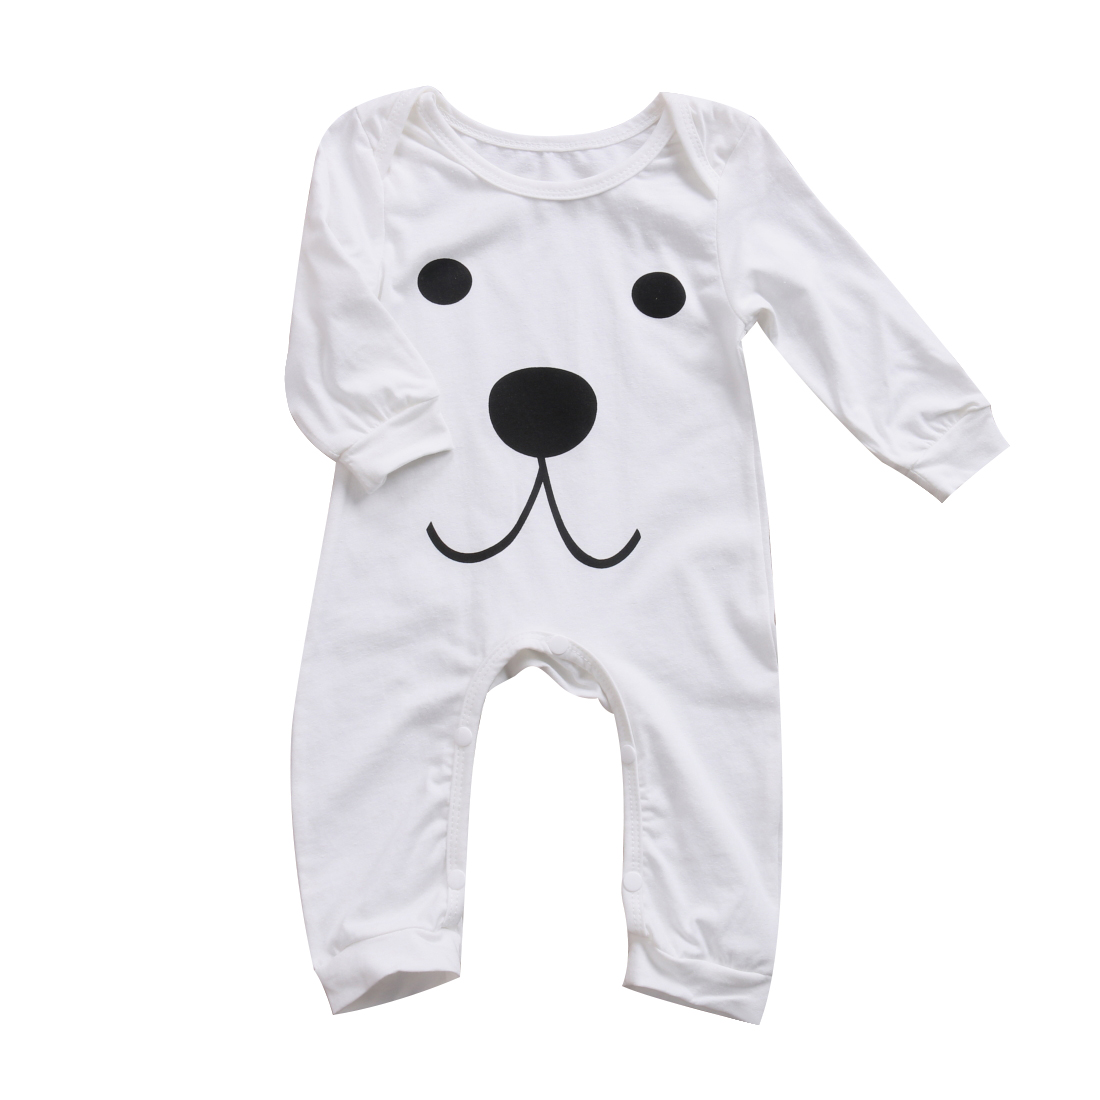 Pudcoco 0-24M Baby Kids Boy Girl Infant Cute Romper Jumpsuit Playsuit Baby Casual Clothes Cotton Outfits